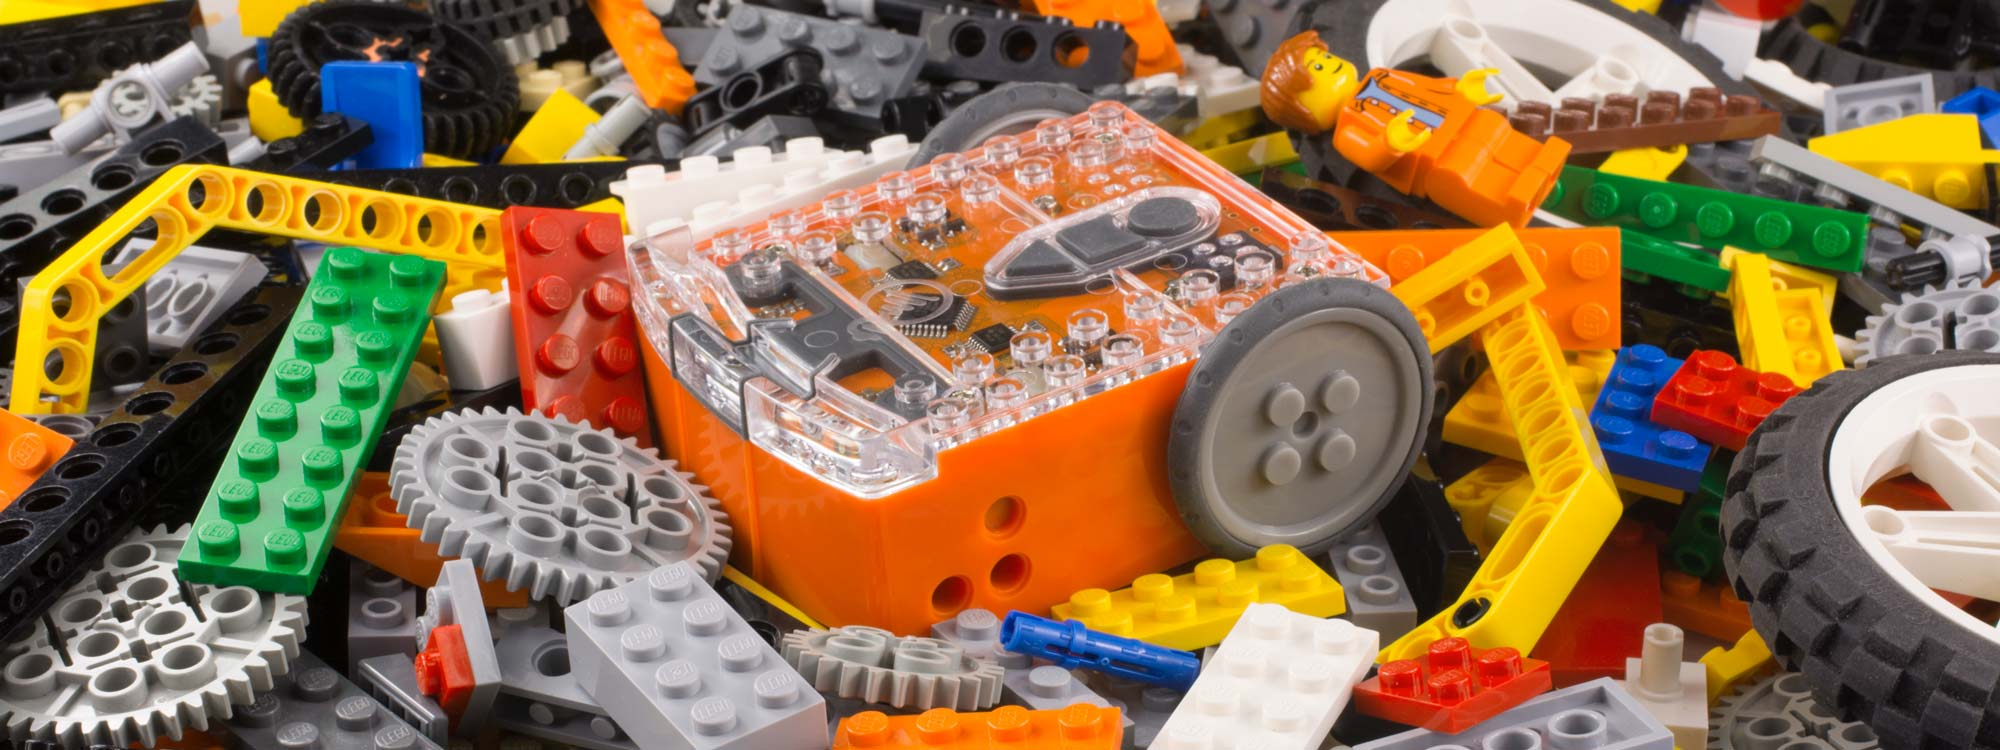 The Edison robot is Lego compatible